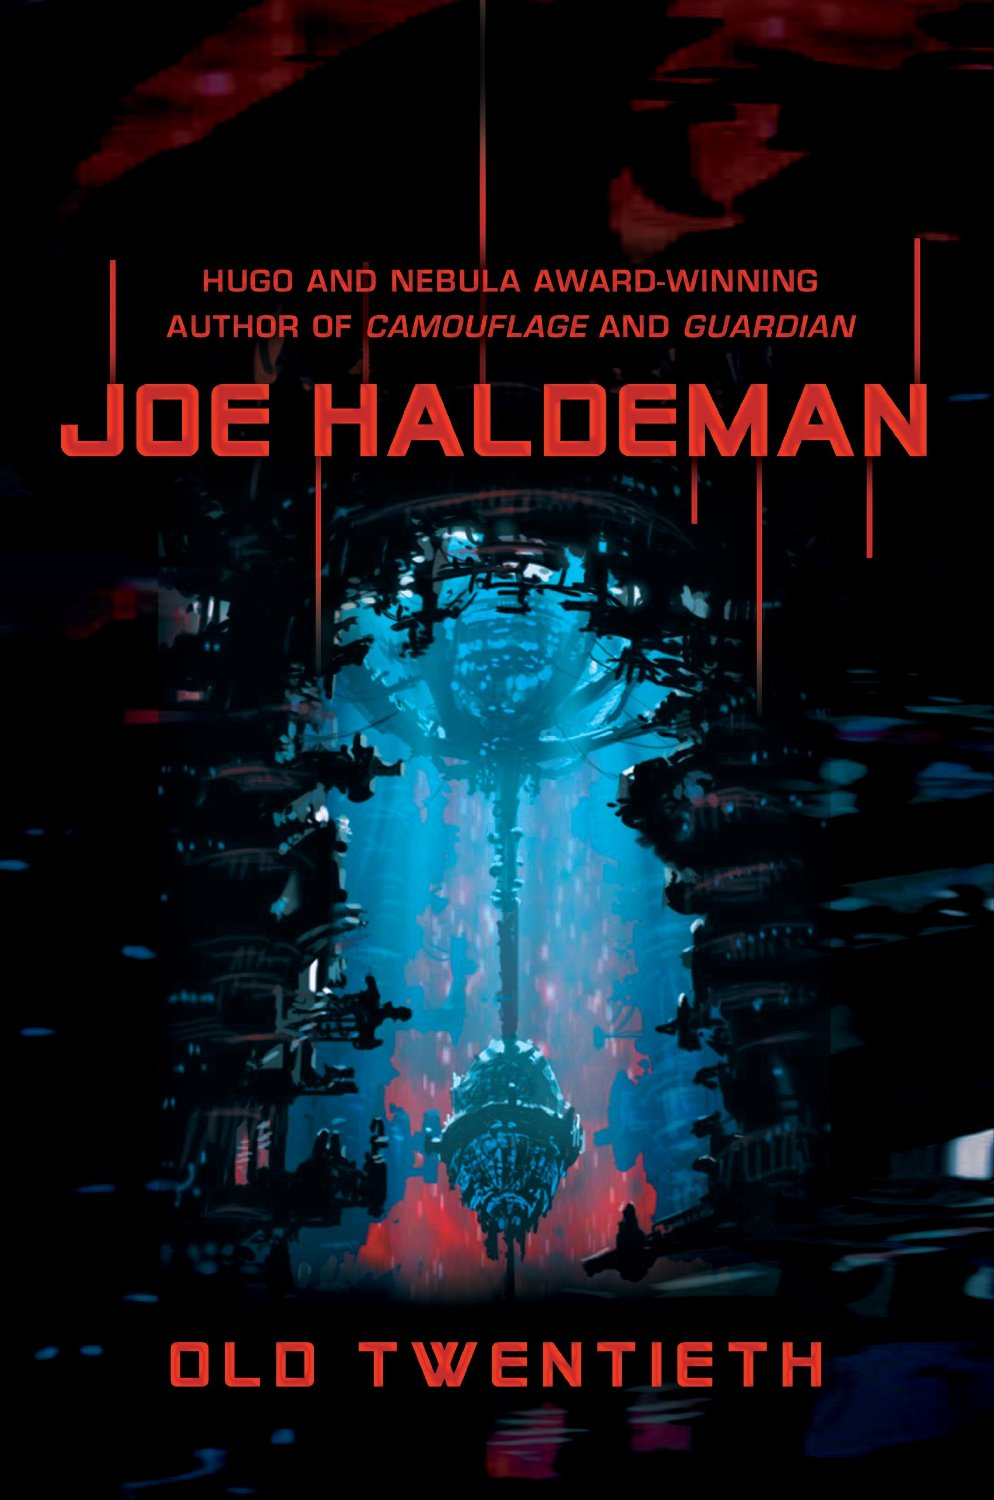 The Old Twentieth by Joe Haldeman - Another mindbender like The Futurological Congress, this one unrolls mainly through holodeck-type sequences that go through a future history of Earth.